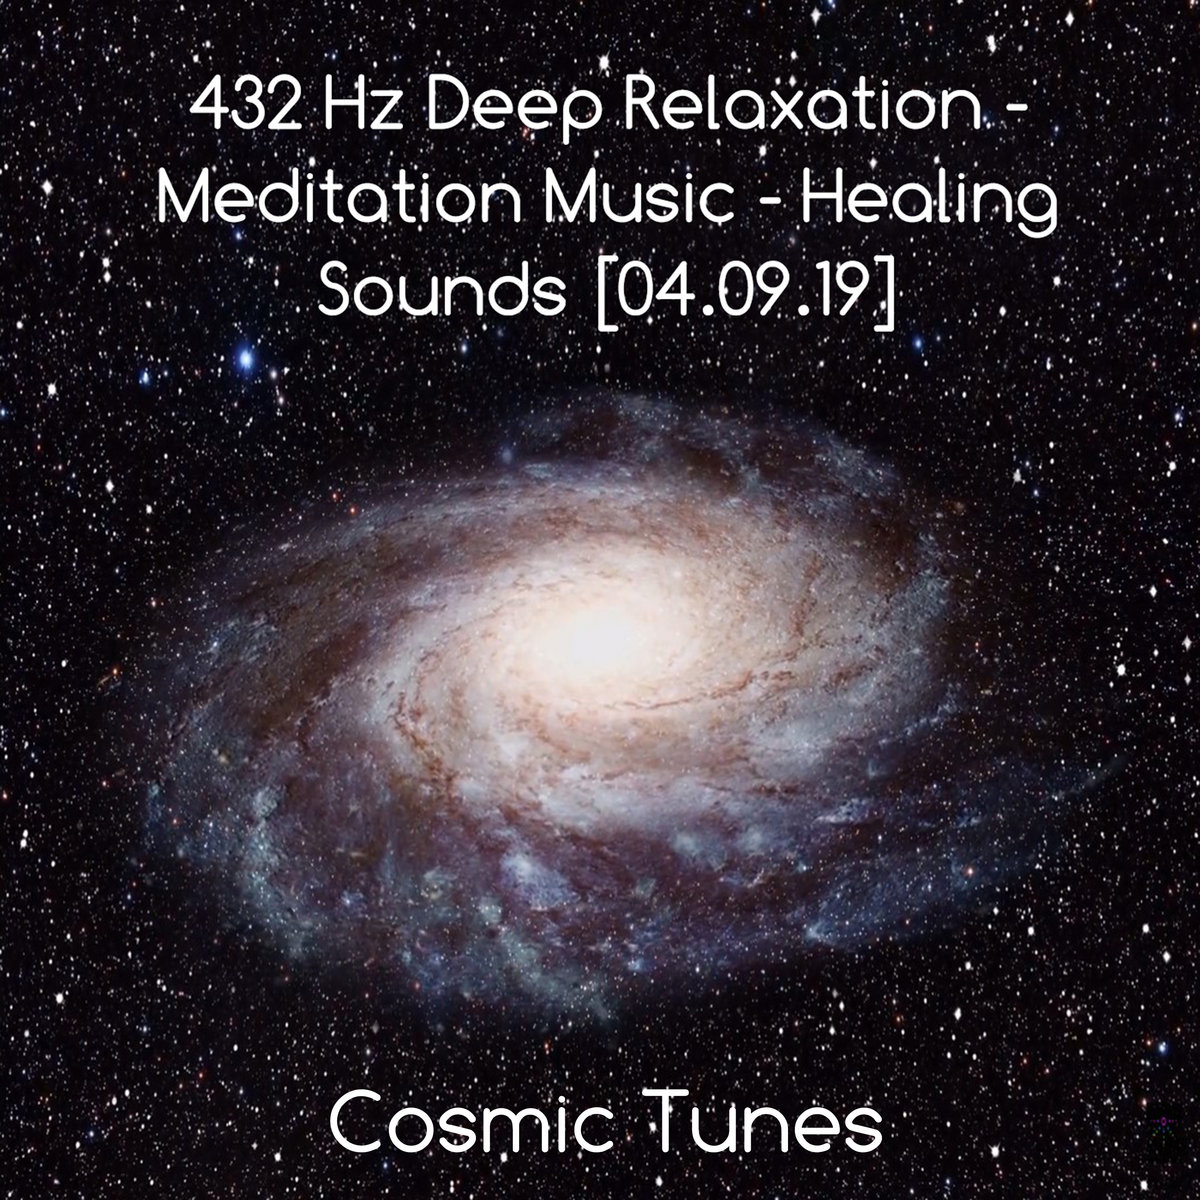 432 Hz Deep Relaxation - Meditation Music - Healing Sounds [04.09.19] by Cosmic Tunes